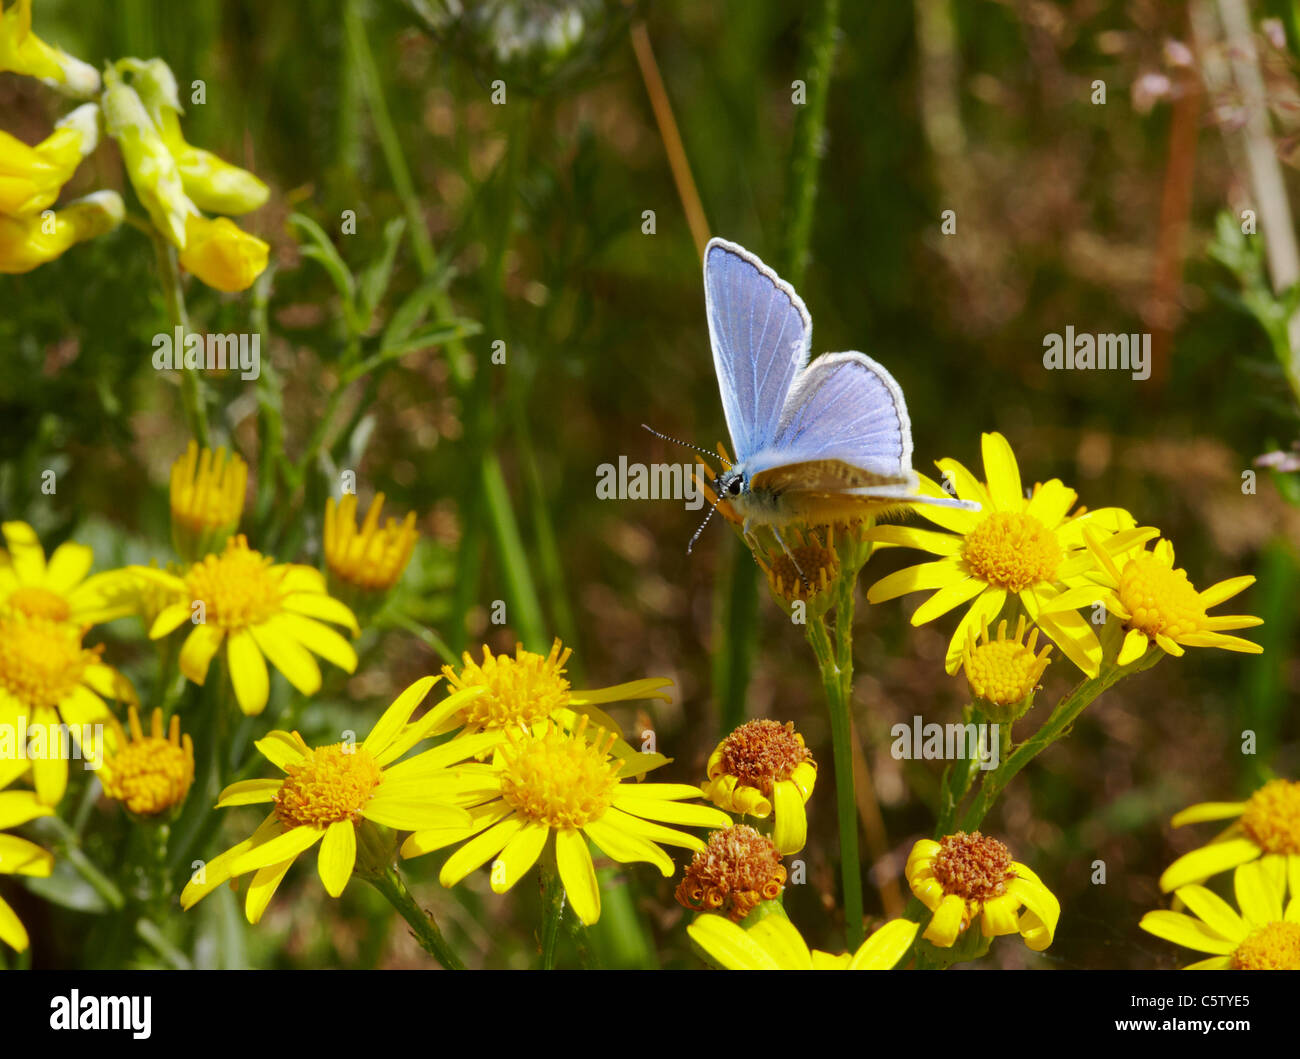 Common Blue butterfly on Ragwort. Hurst Meadows, West Molesey, Surrey, England. - Stock Image